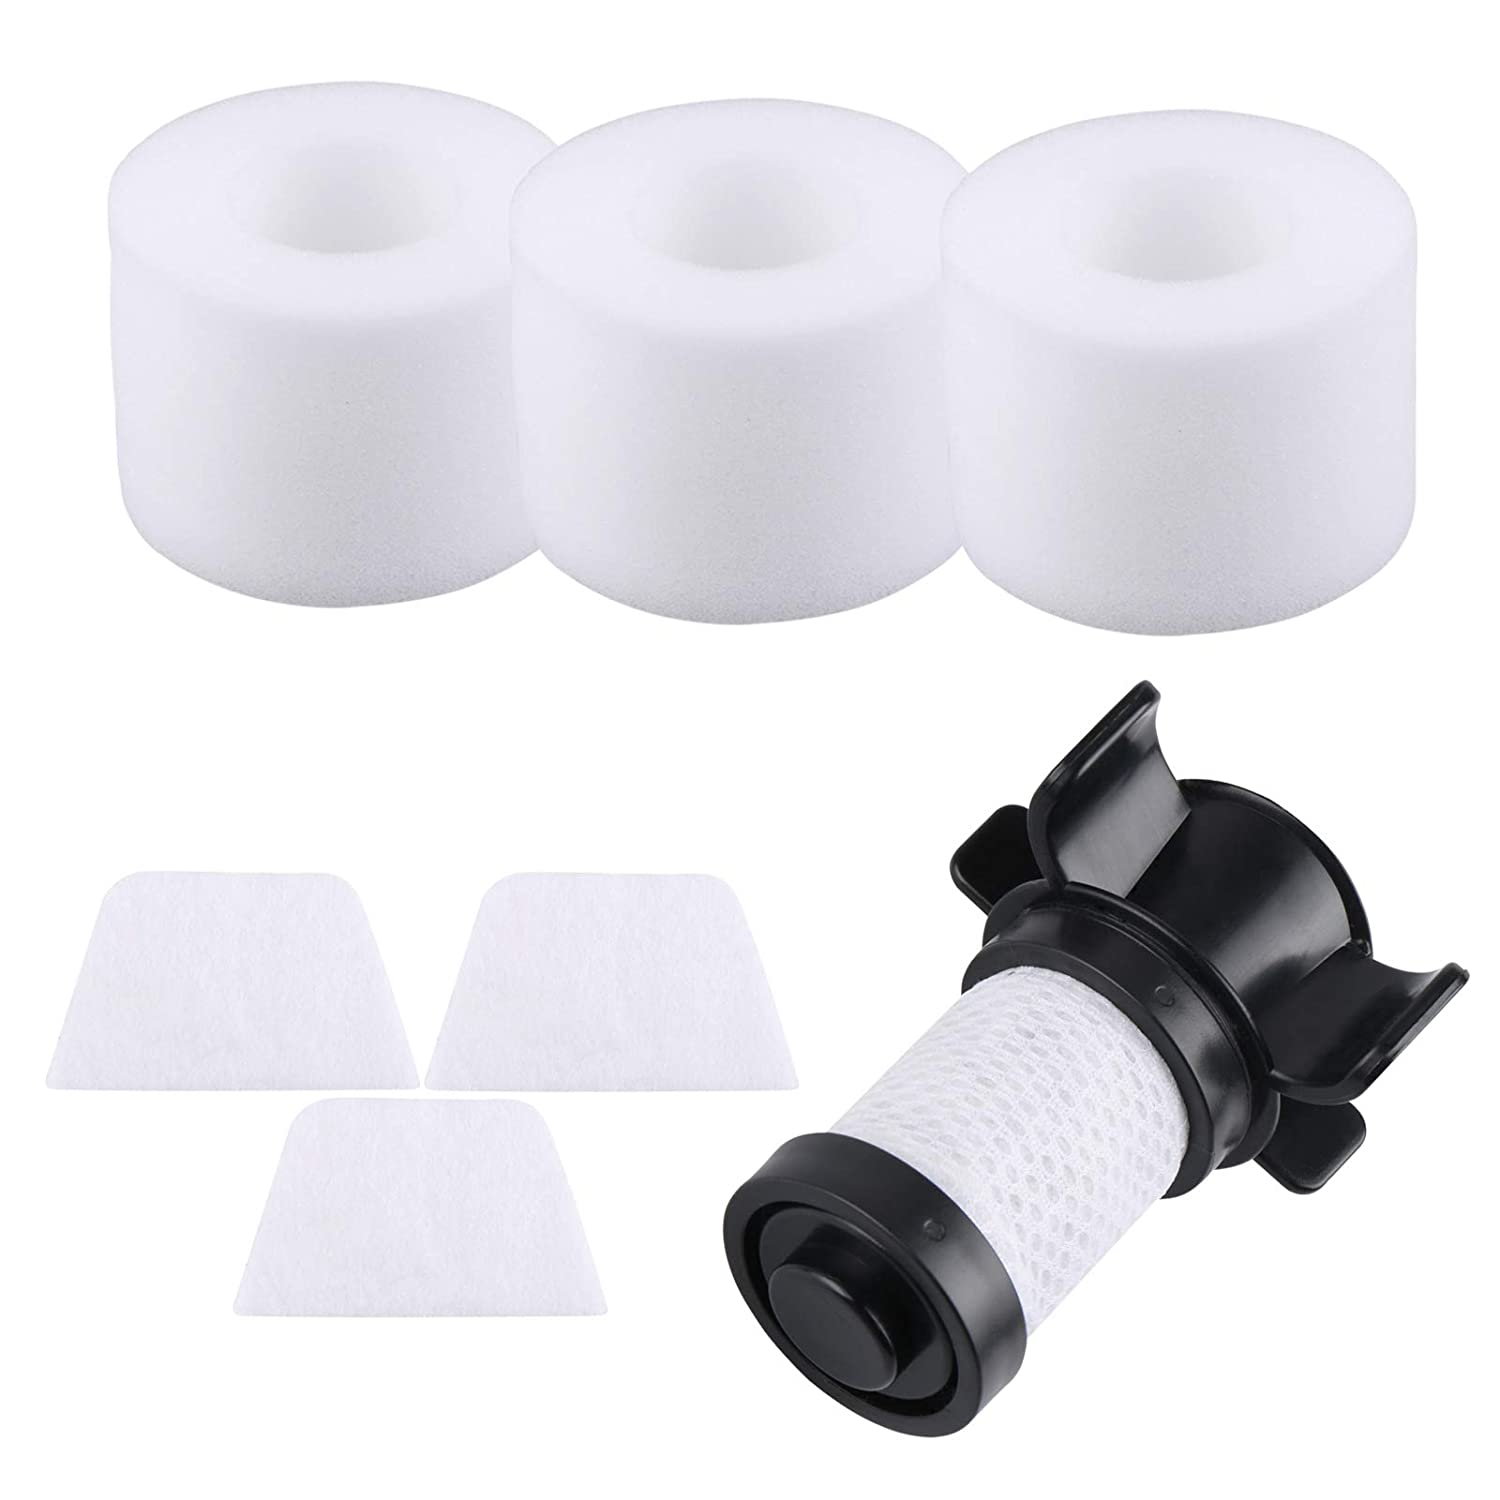 Aunifun Filters for Shark IONFlex 2X DuoClean Cordless Ultra-Light Vacuum IF251 IF252 IF205 IF202 IF201 IC205 Replacement XPREMF100 IC205 Replacement XPREMF100 (1 HEPA Filter and 3 Foam Filters)